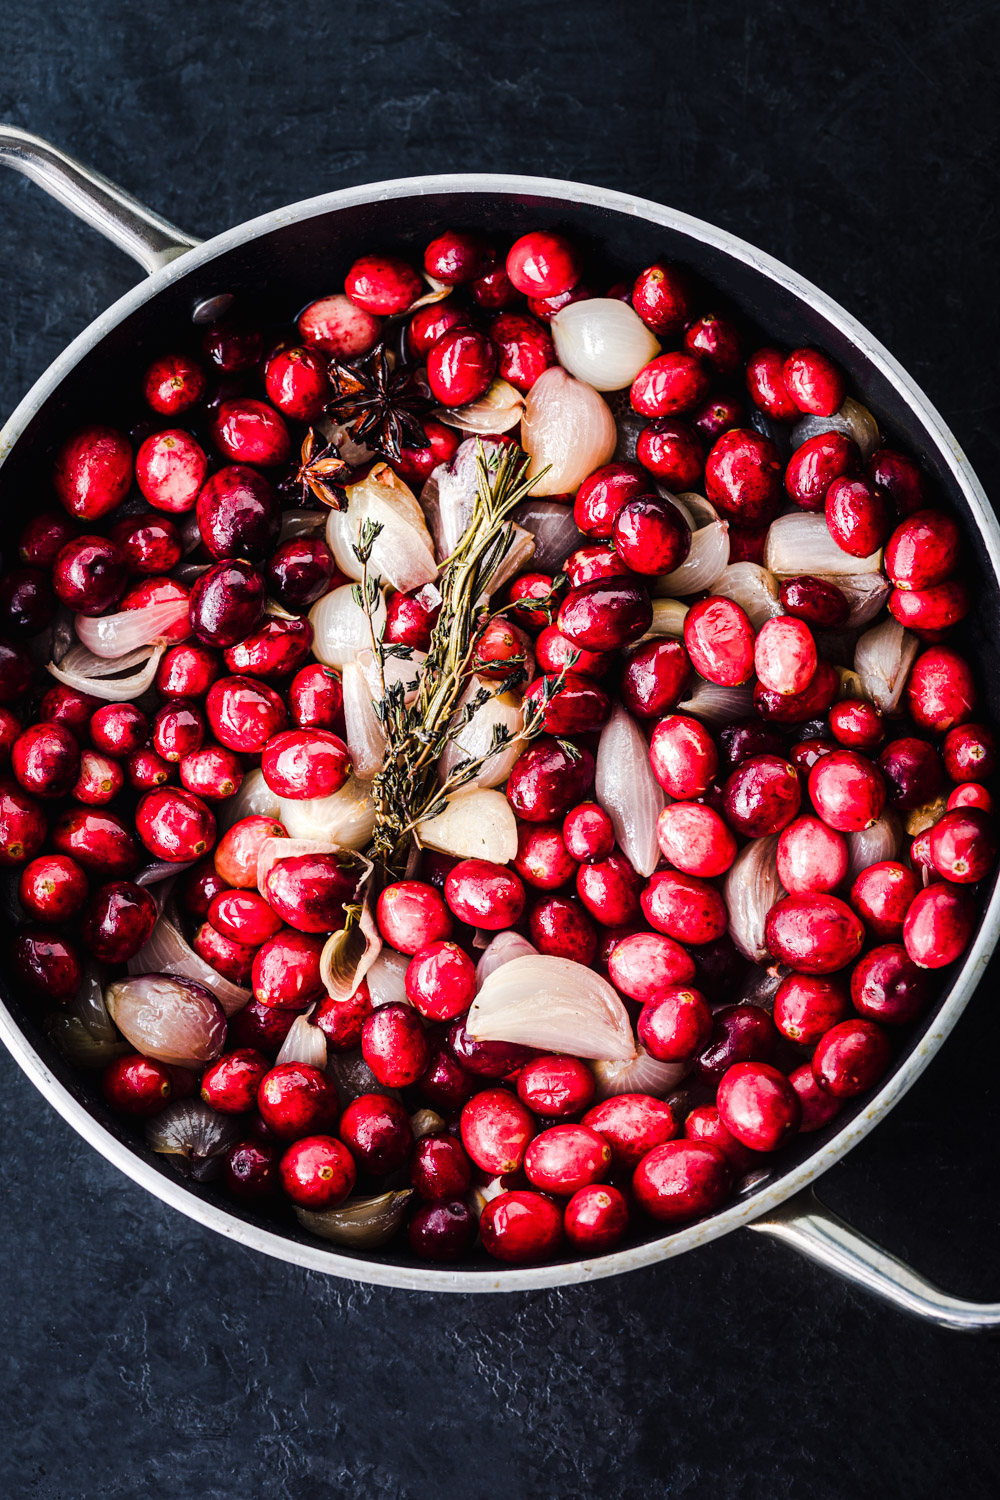 Shallot mixture topped with cranberries.